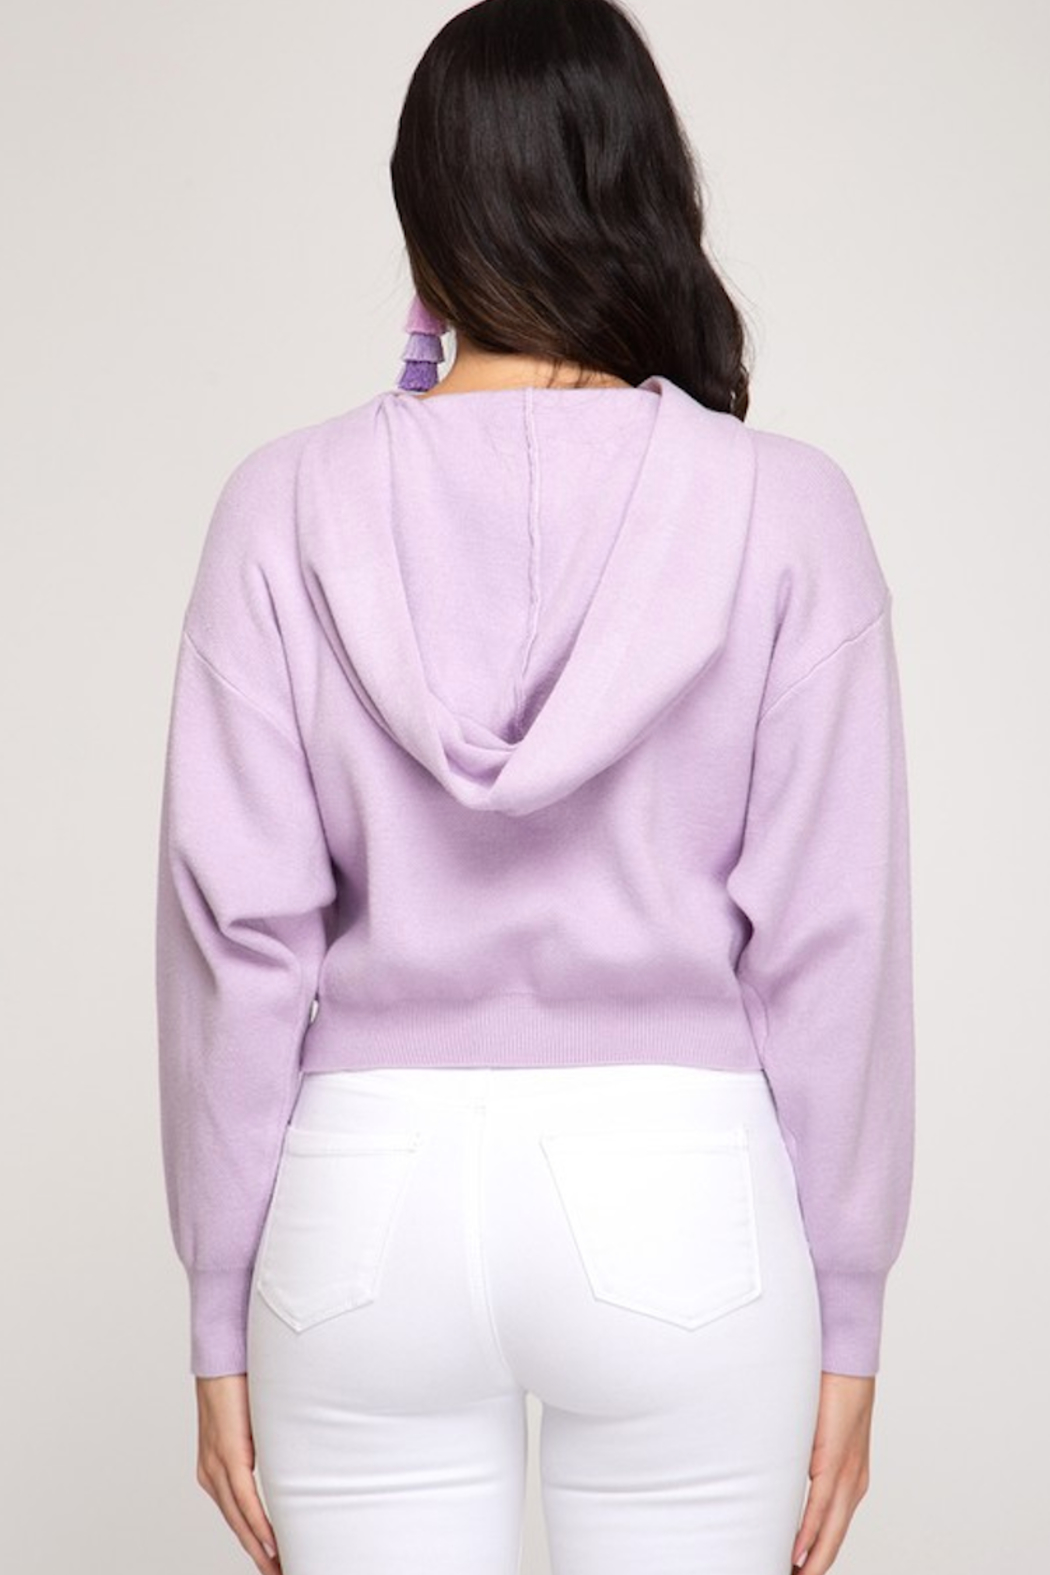 She and Sky Long sleeve hooded knit cropped sweater top - Main Image